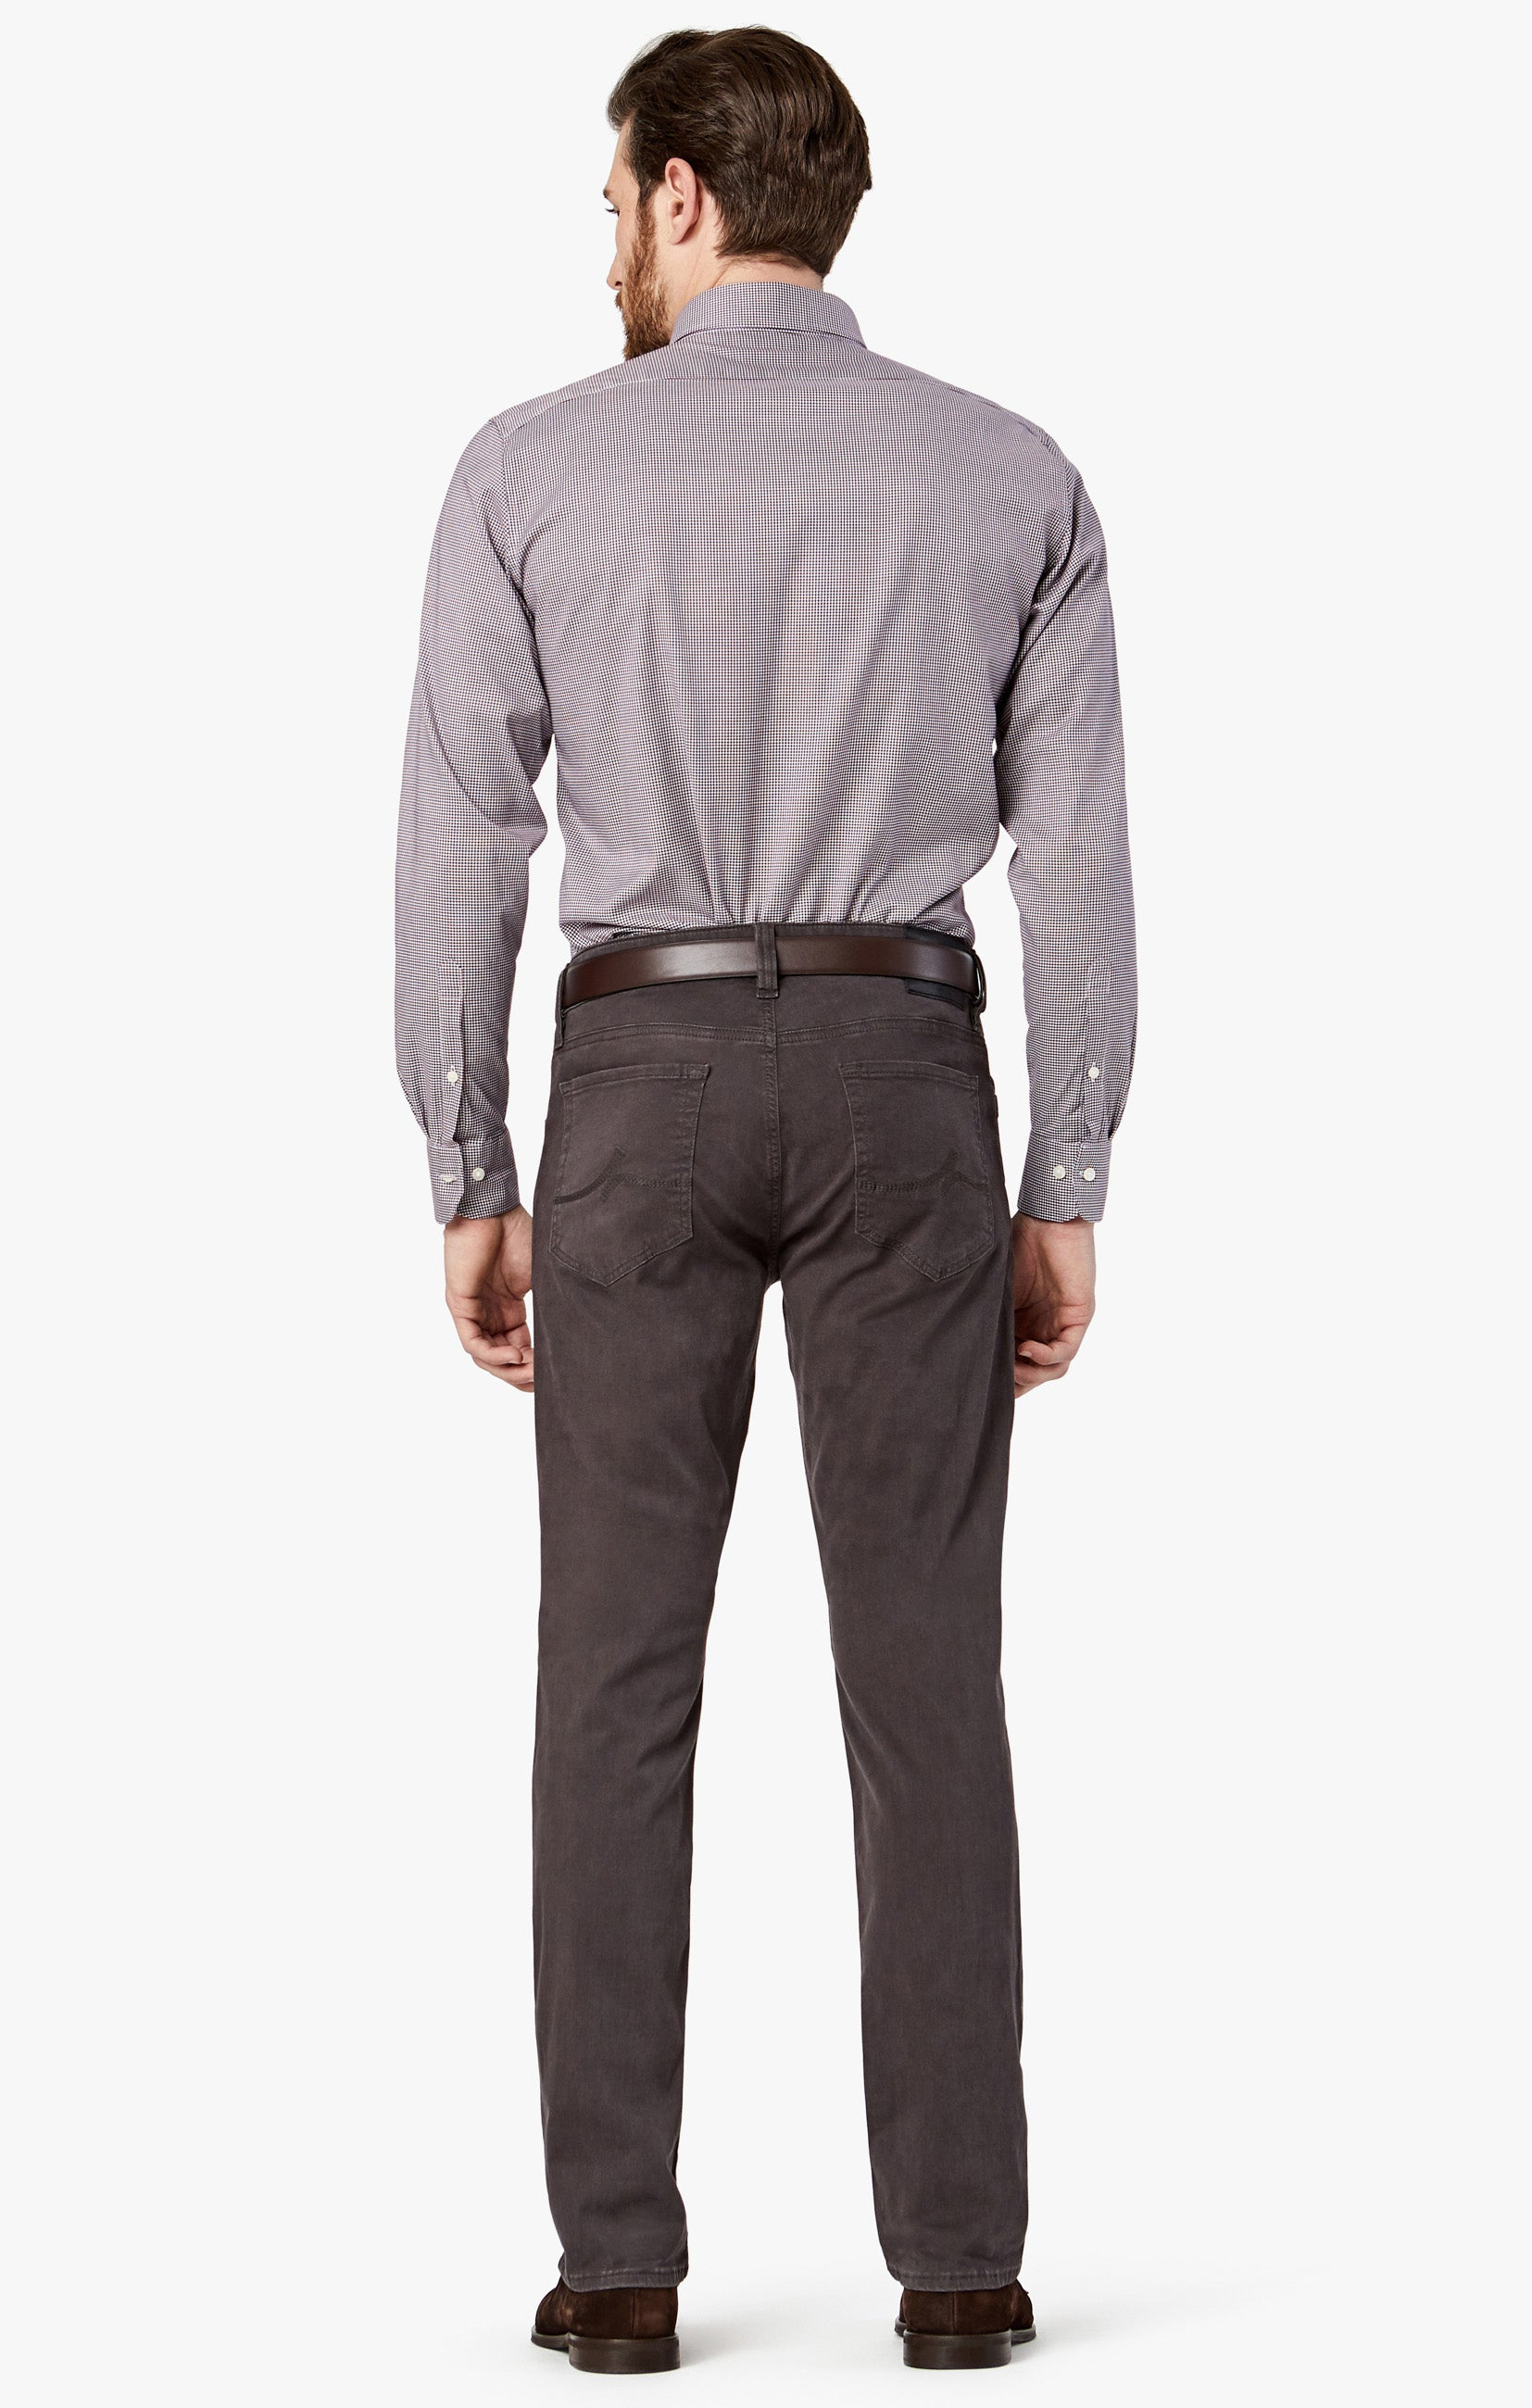 Charisma Relaxed Straight in Anthracite Twill Image 4